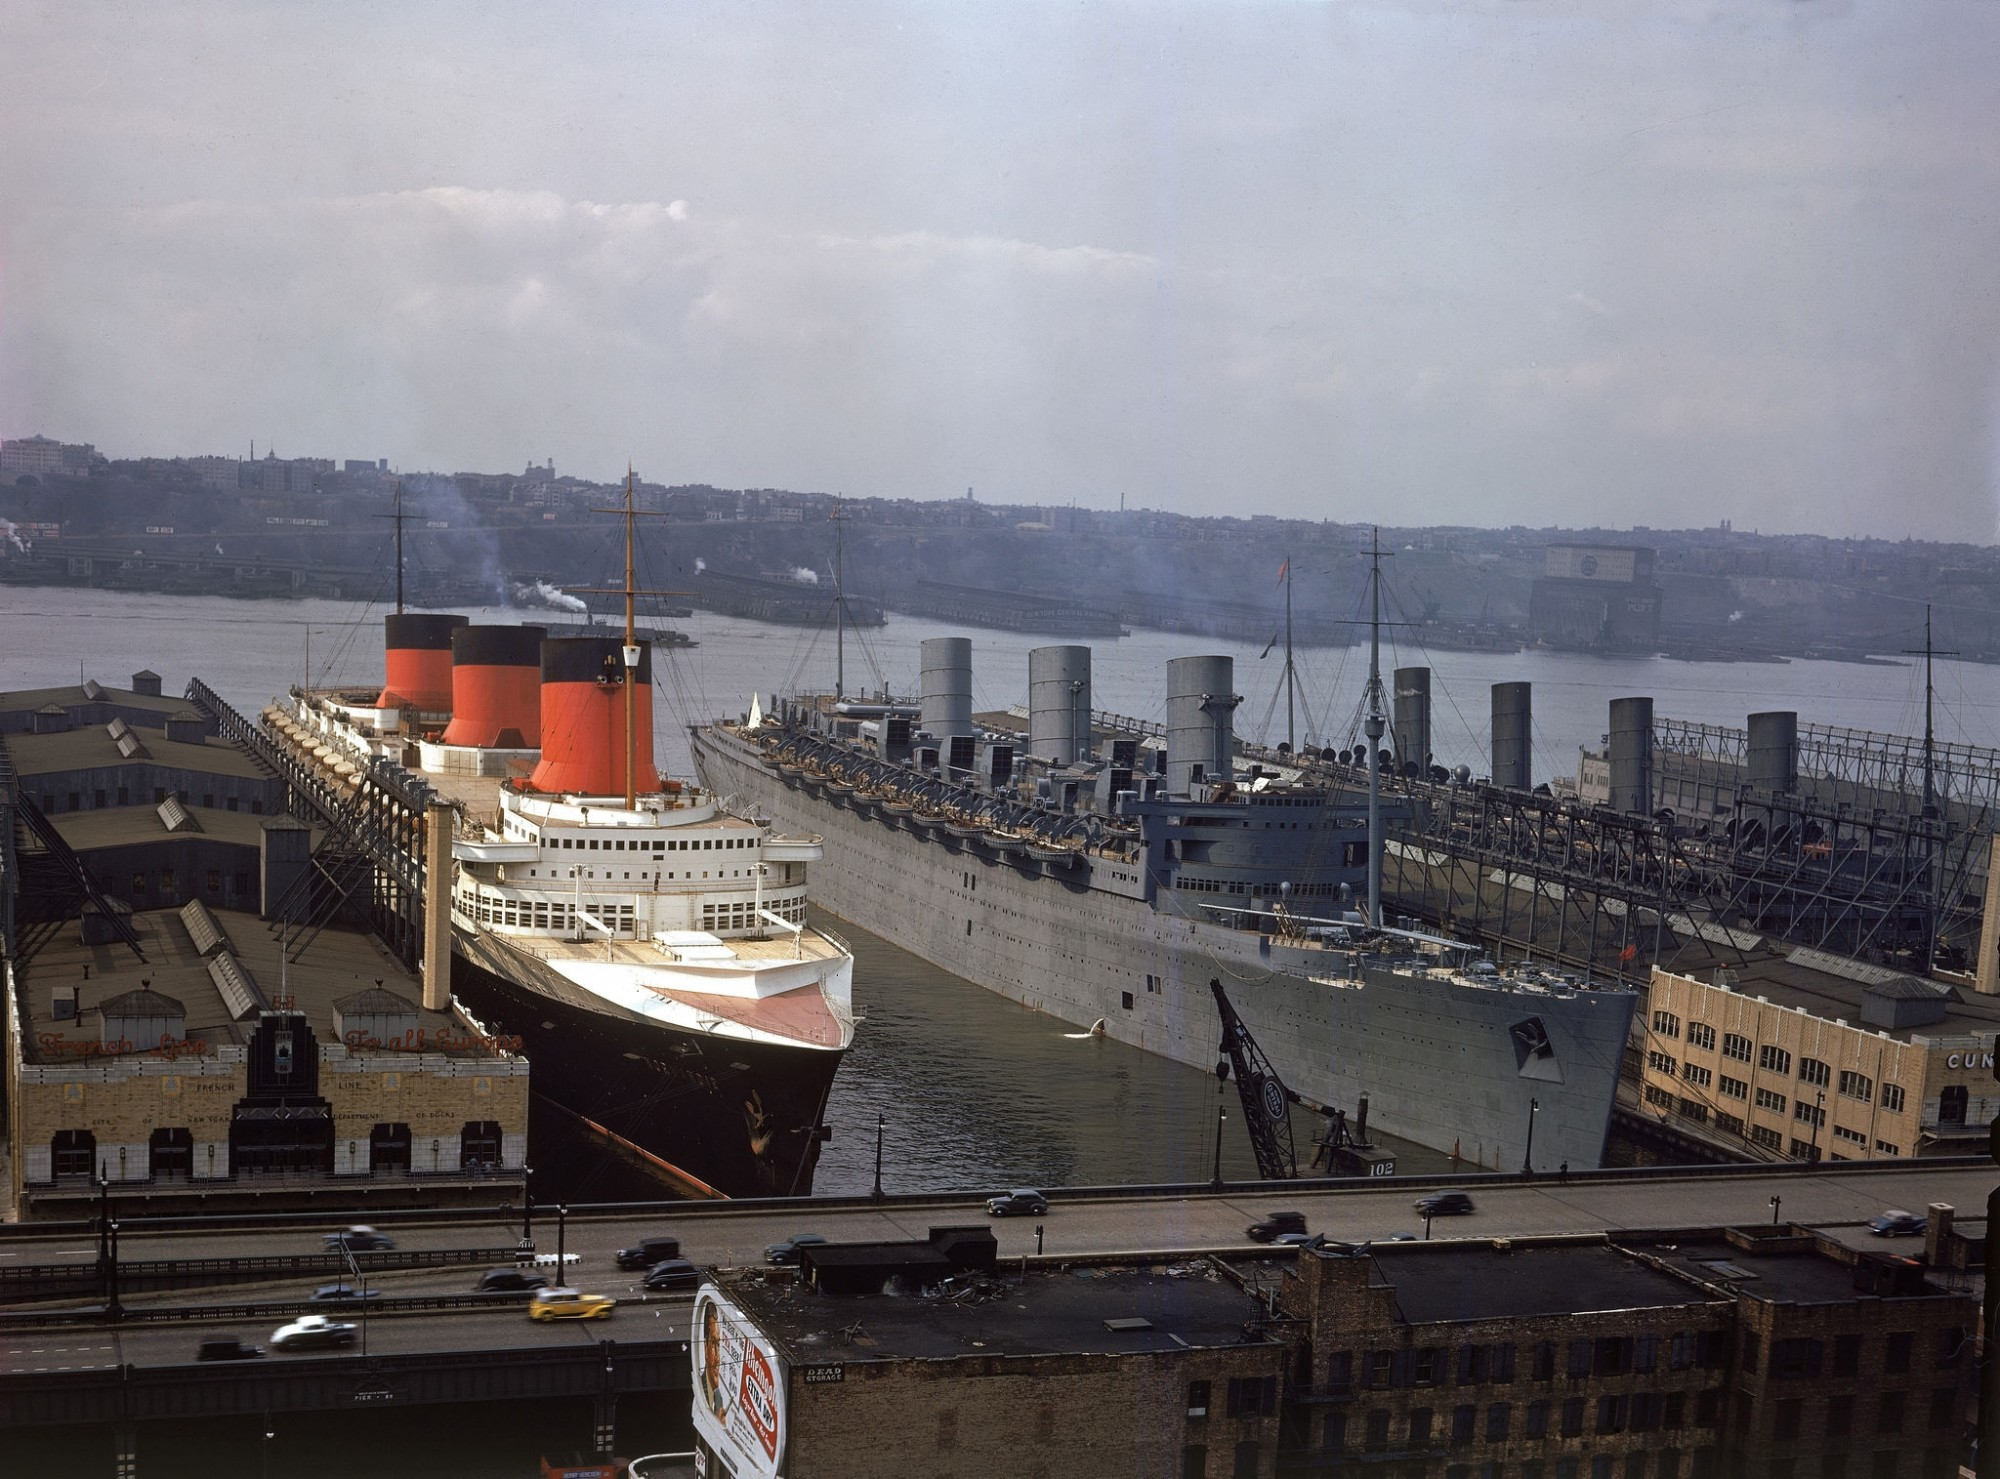 1939, november NY View of two ocean liners, the French SS Normandie (left) and the British RMS Queen Mary